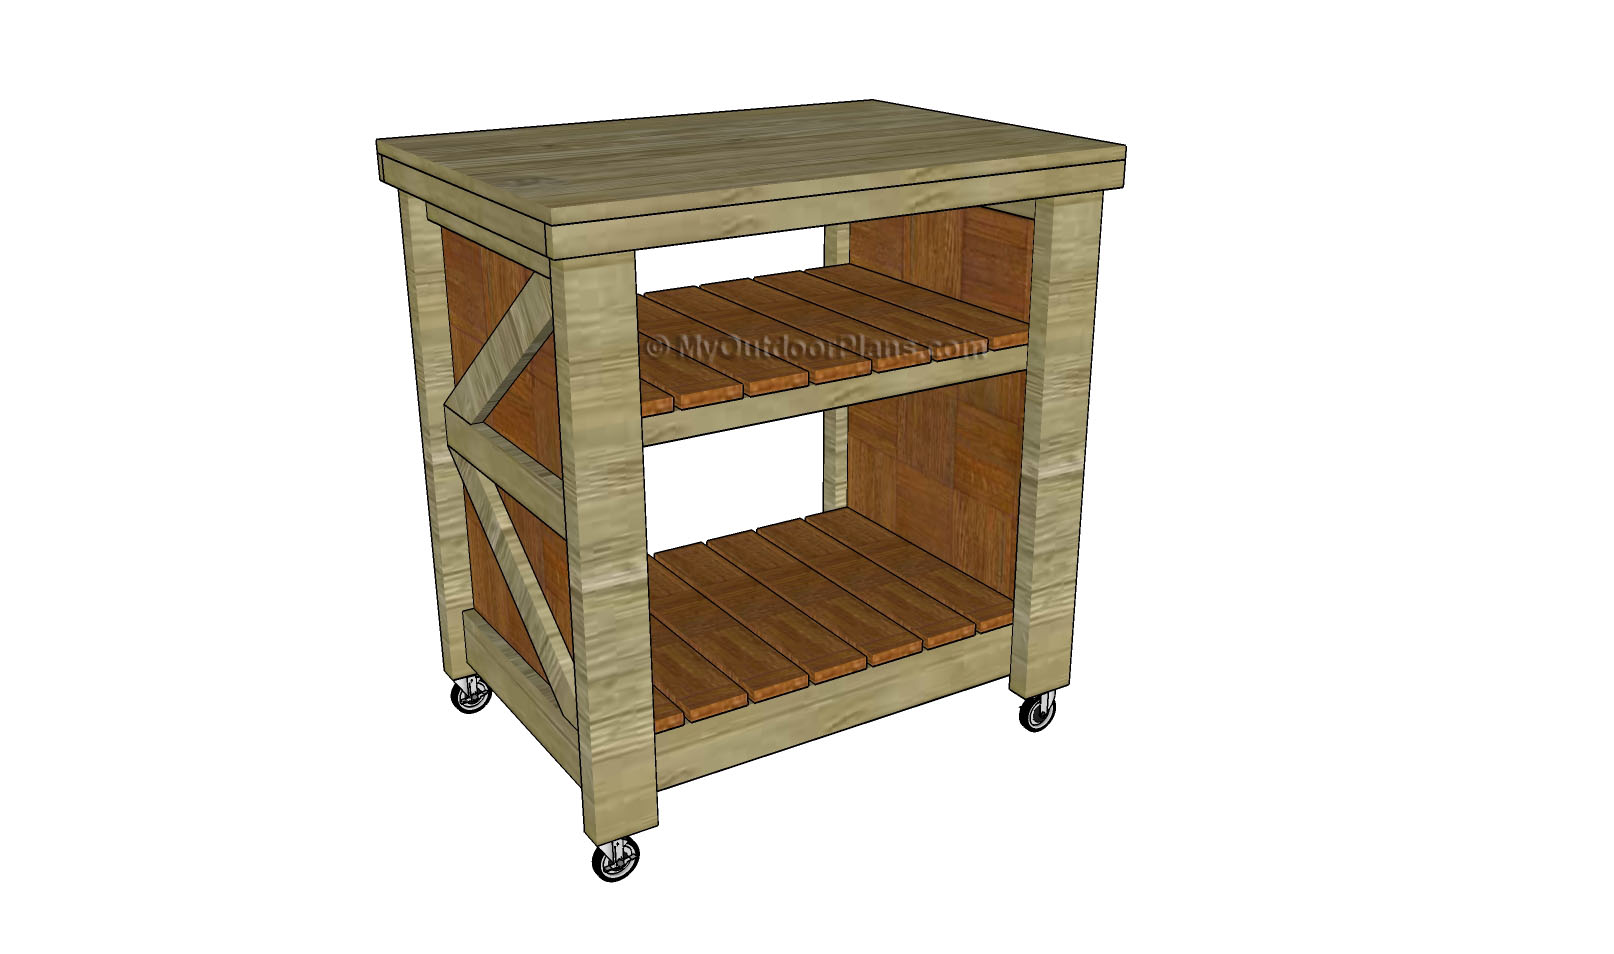 Small kitchen island plans free outdoor plans diy shed wooden playhouse bbq woodworking Kitchen island plans